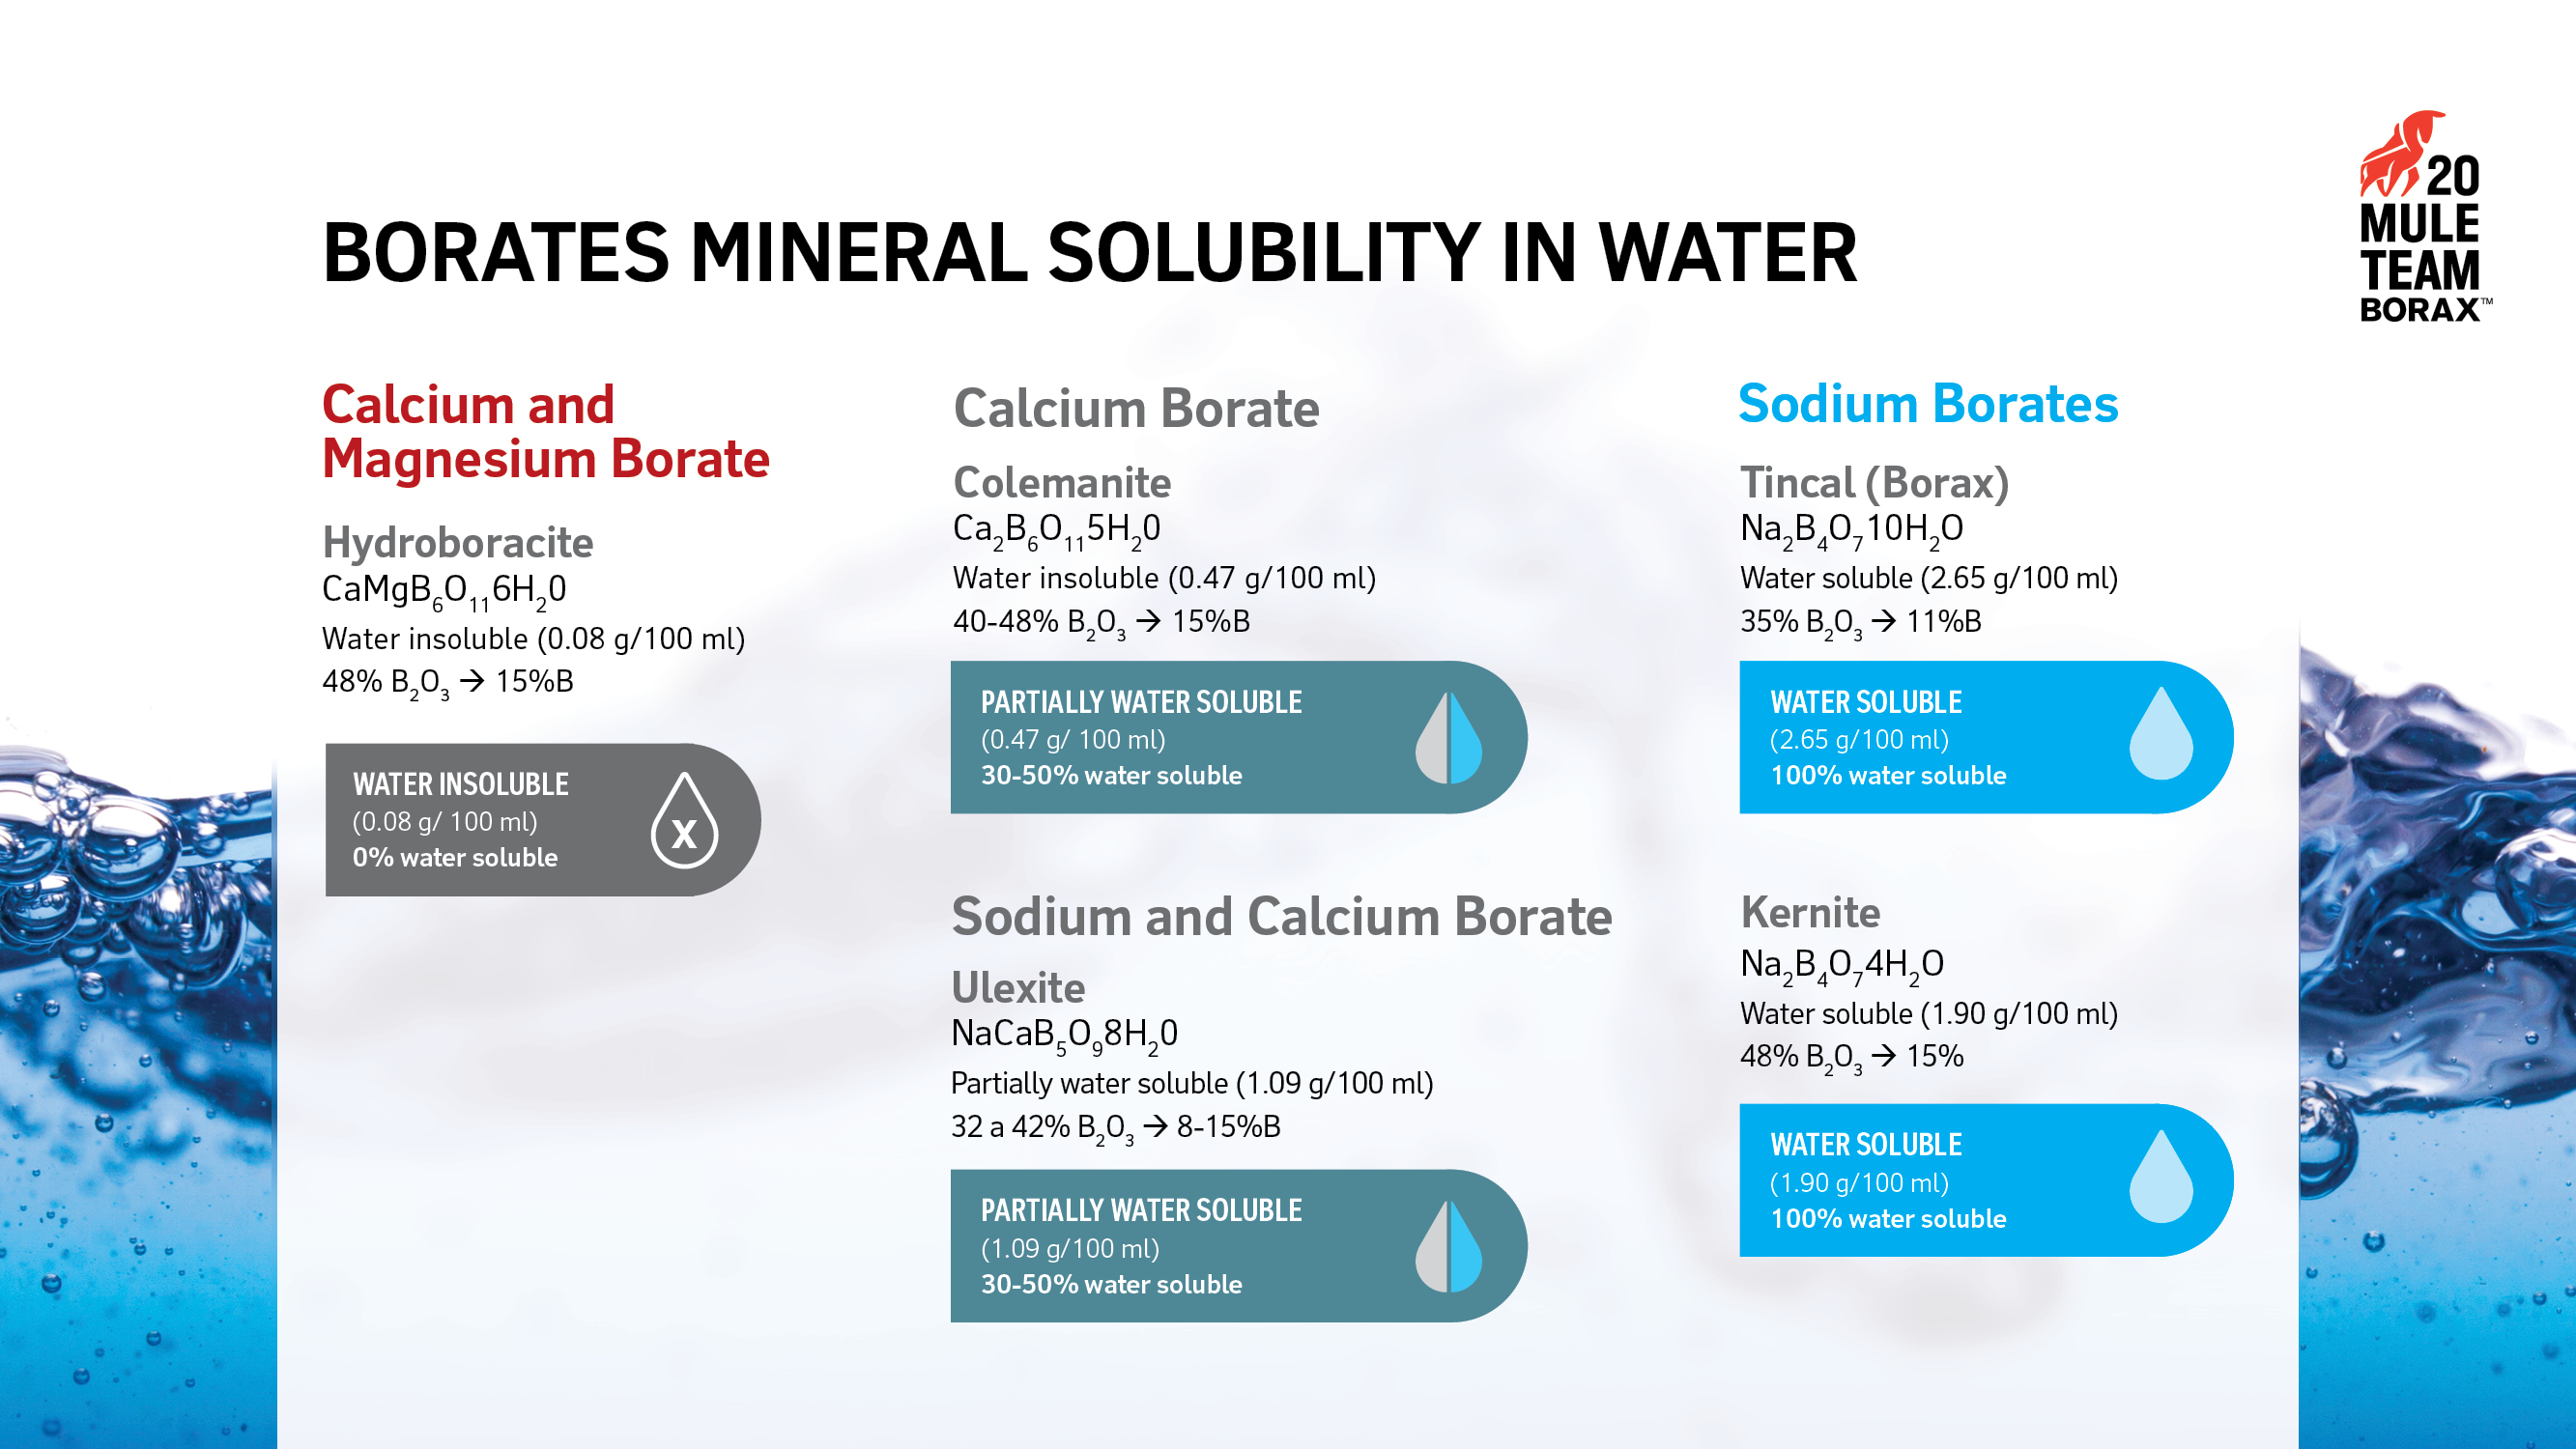 BORATES MINERAL SOLUBILITY IN WATER Calcium and Magnesium Borate: Water Insoluble, Calcium Borate: Partially Water Insoluble, Sodium and Calcium Borate: Partially Water Insoluble, Sodium Borates (Tincal, Borax, and Kernite: Water Soluble